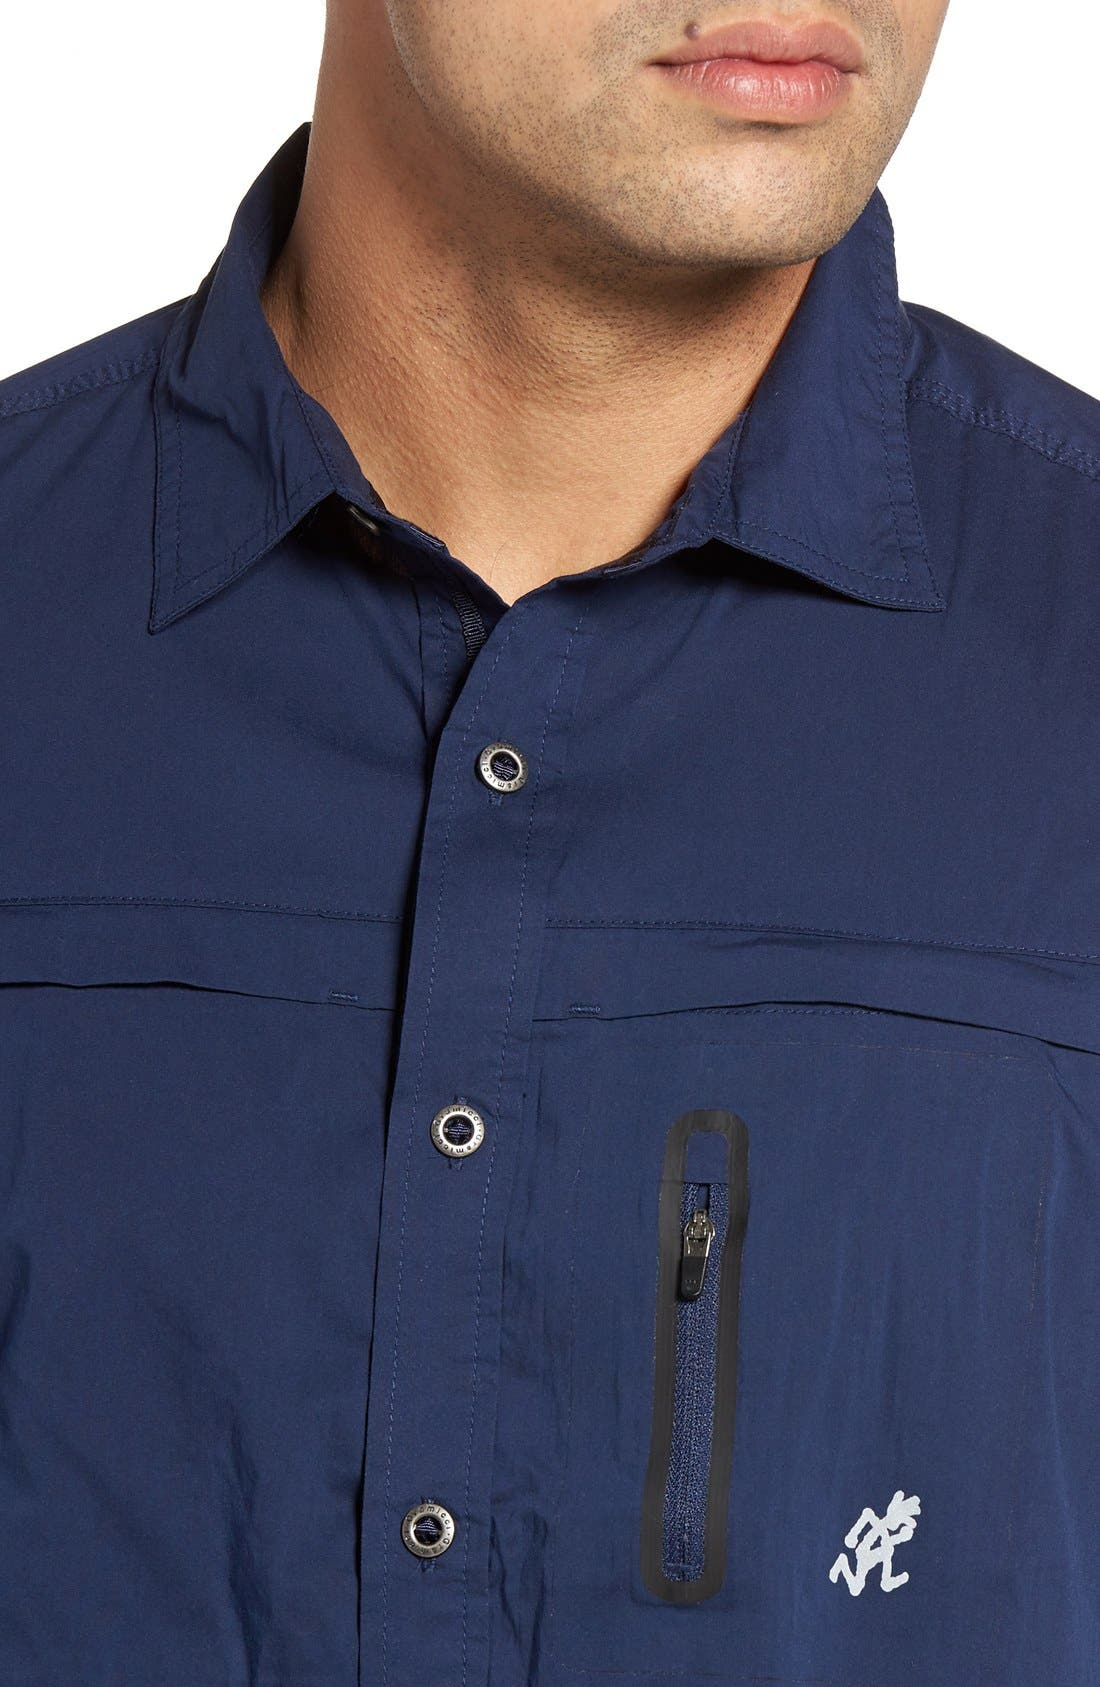 NO-Squito Regular Fit Travel Shirt,                             Alternate thumbnail 7, color,                             408